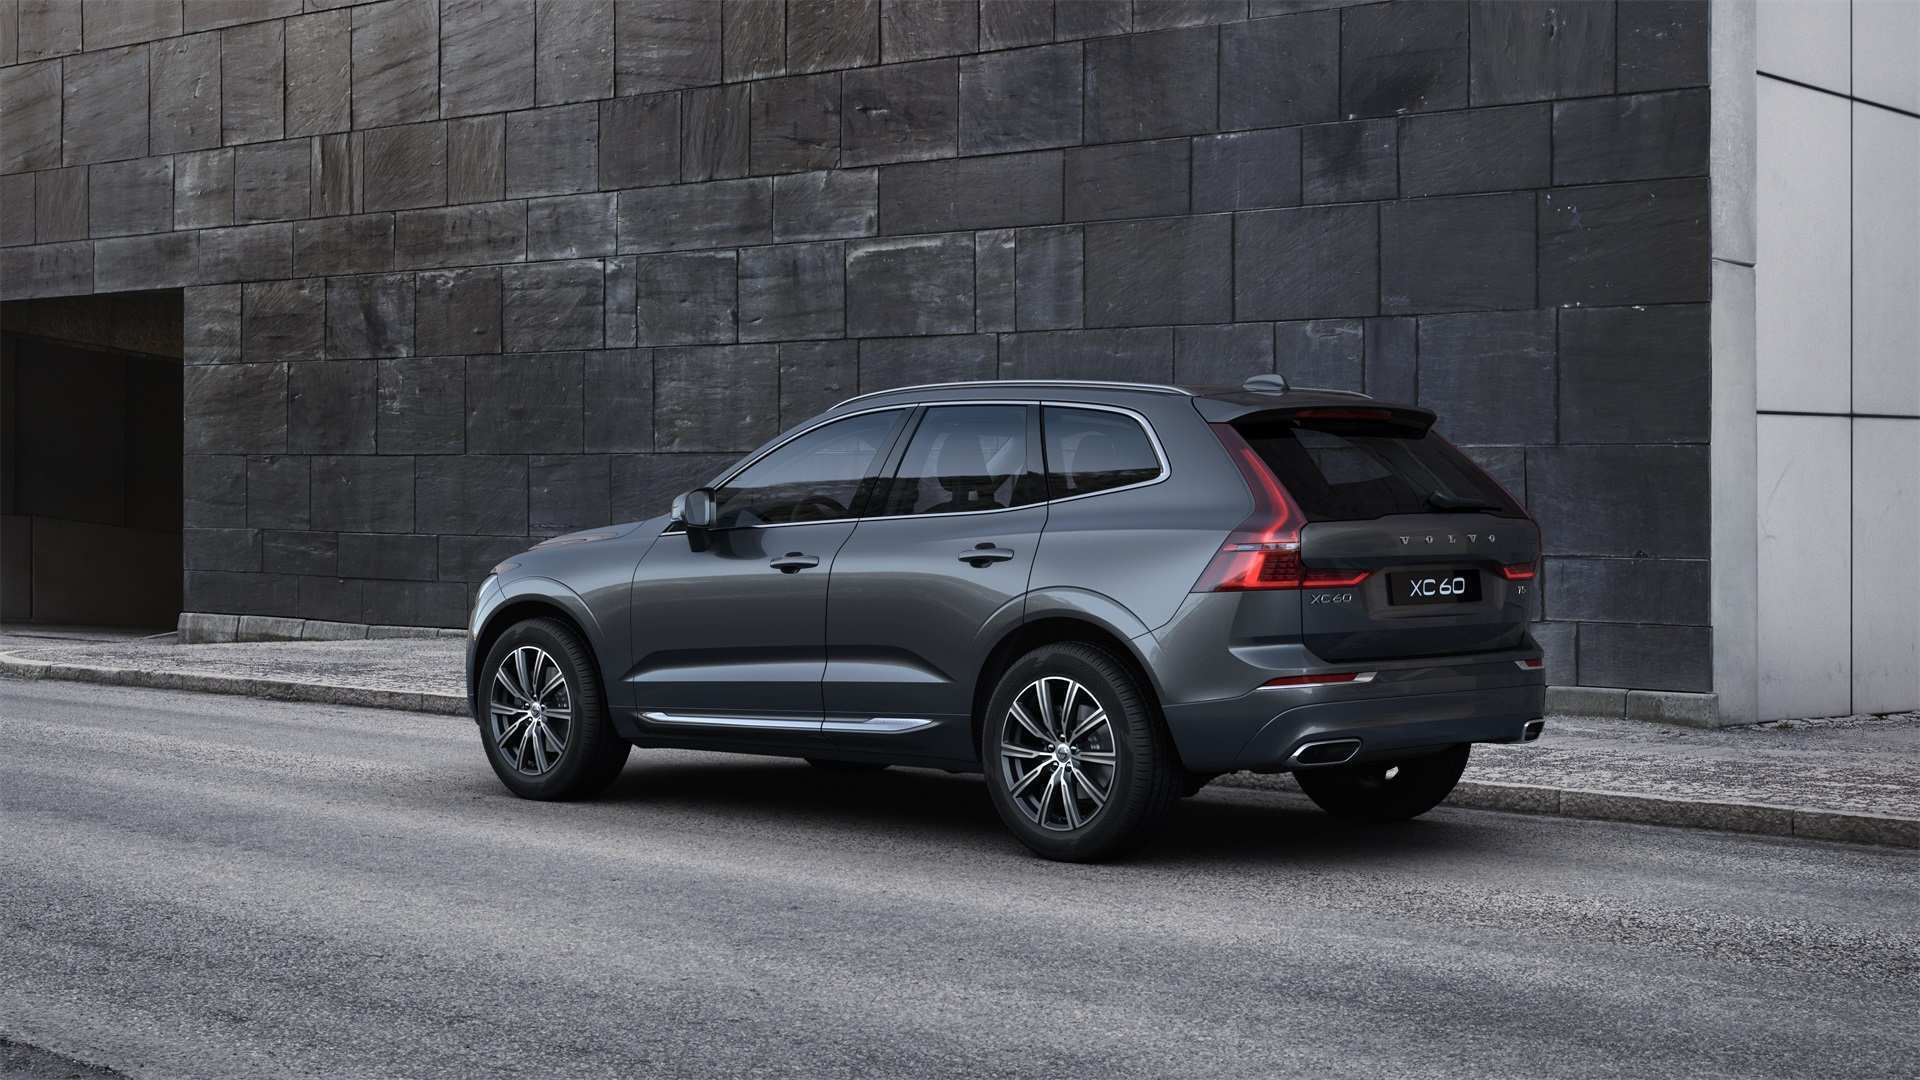 31 The Best Volvo Xc60 2019 Osmium Grey New Concept